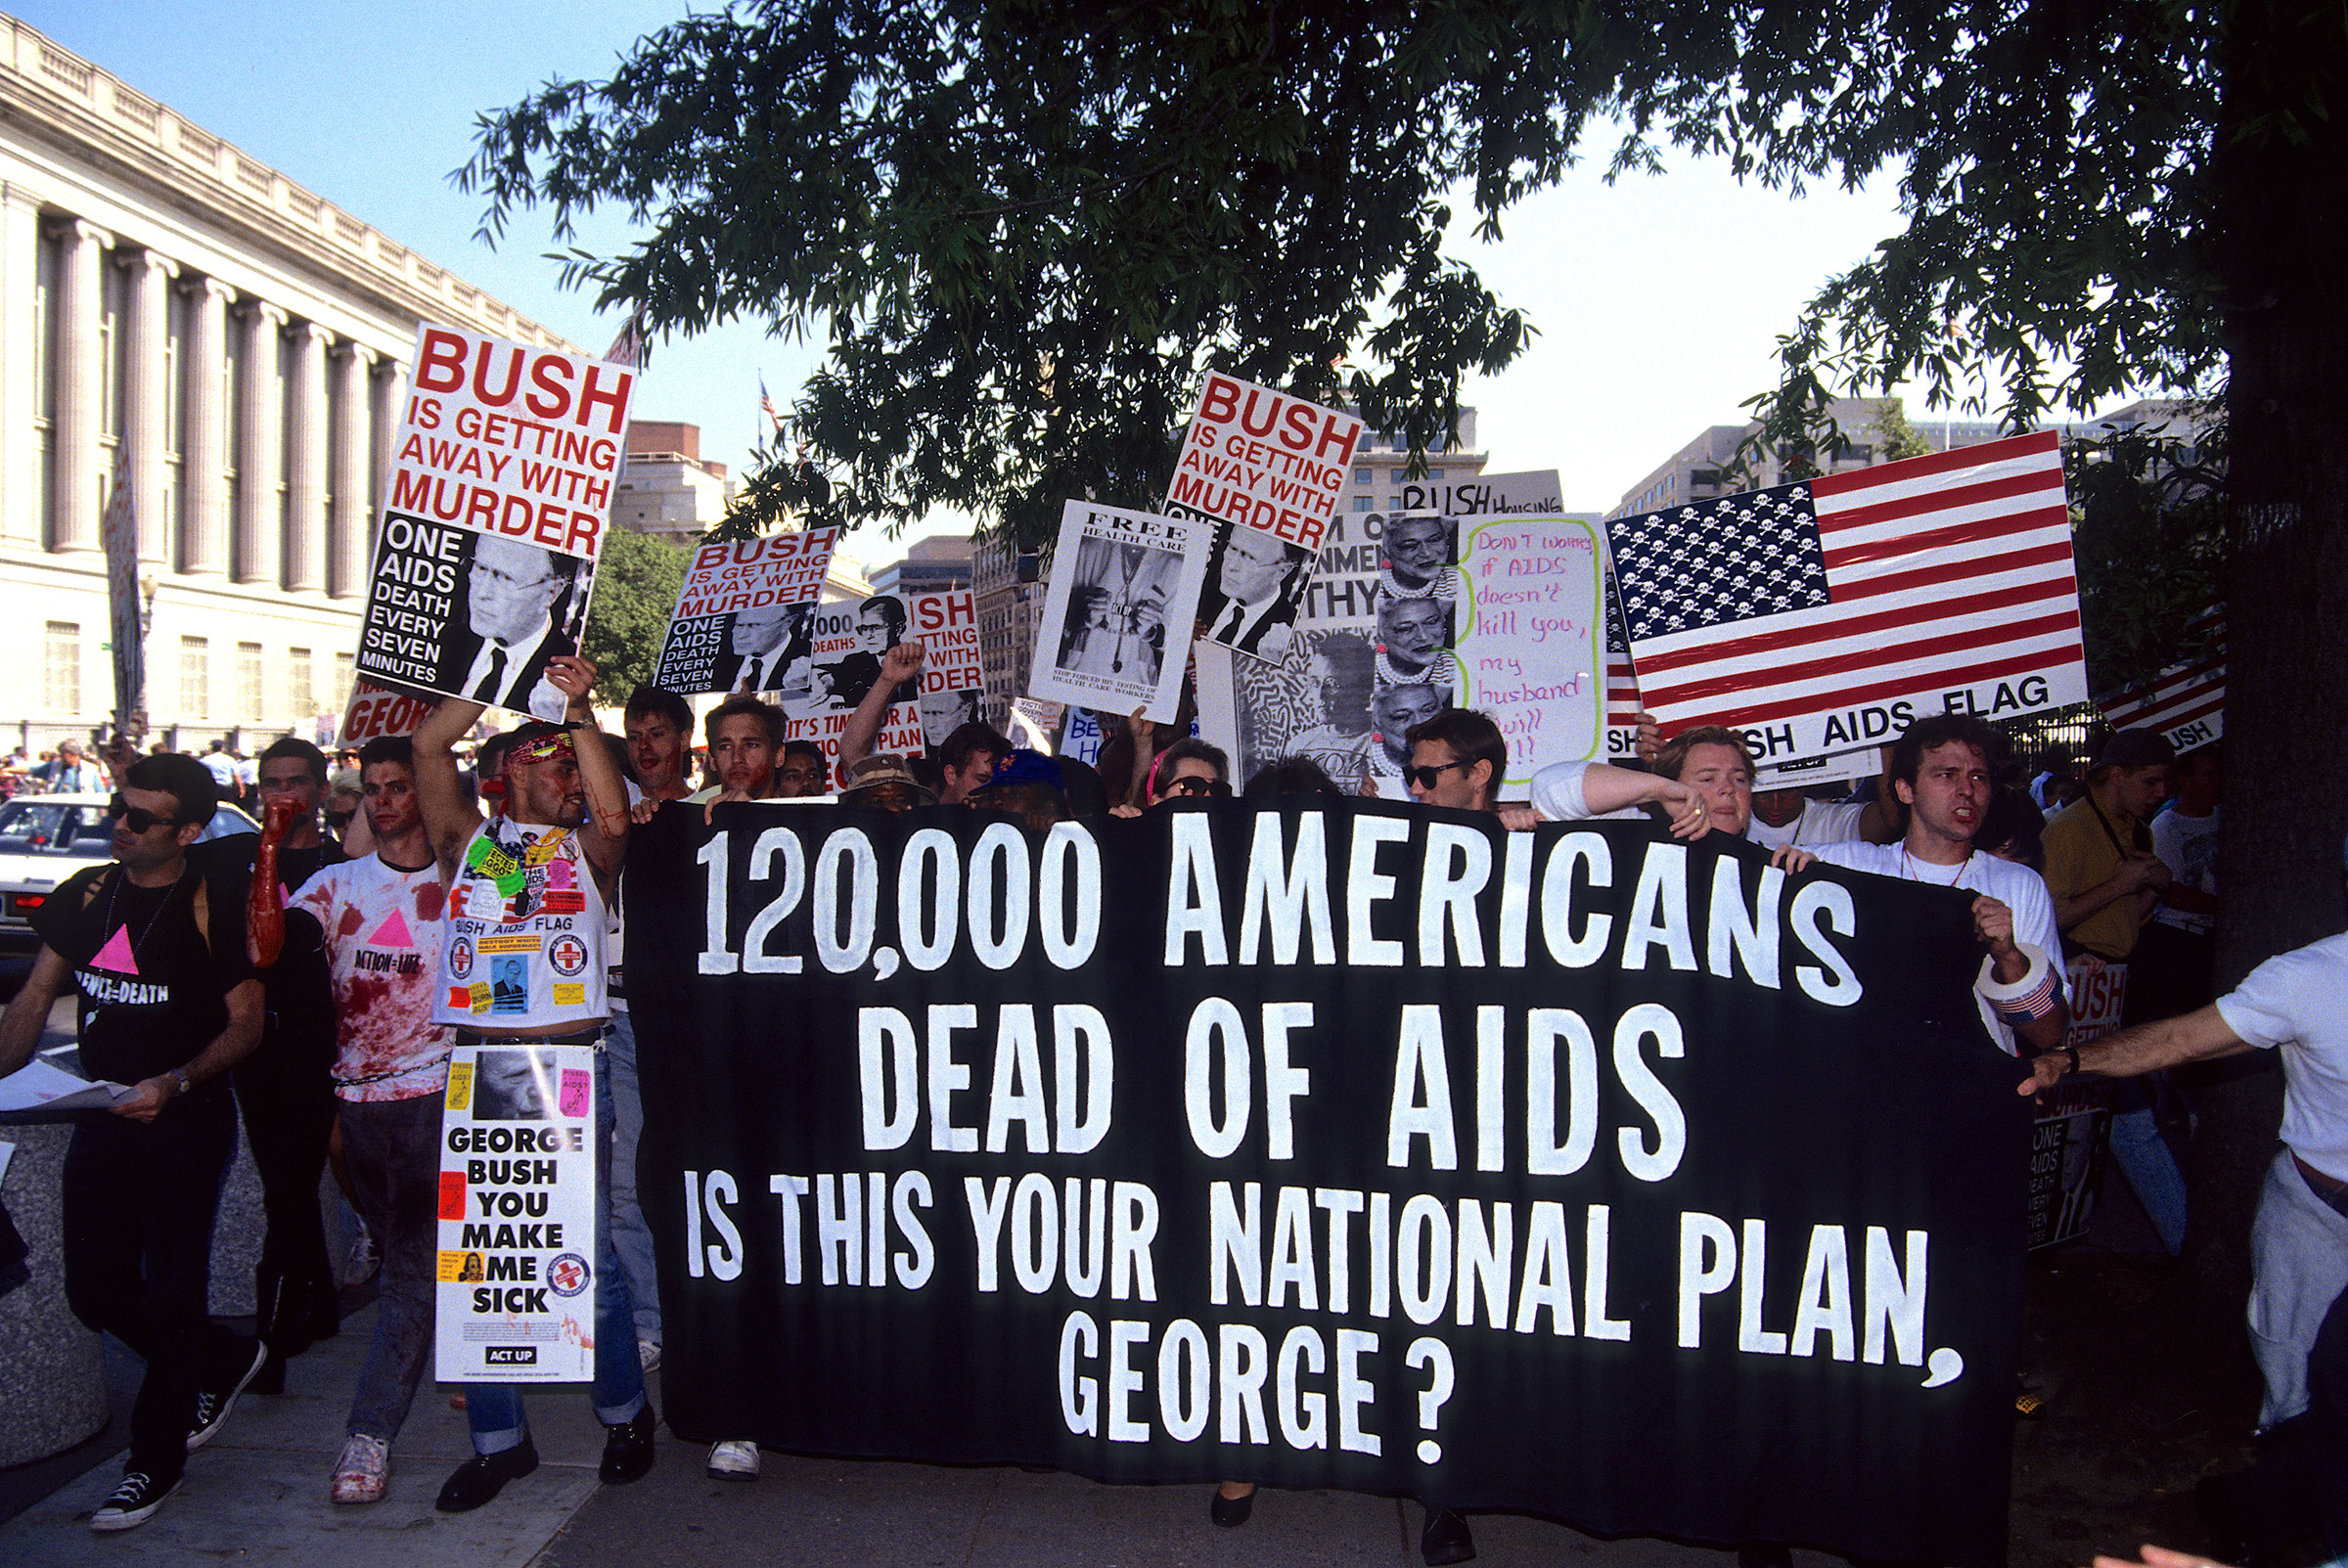 ACT UP activists protest near the White House in Washington, D.C., on Sept. 30, 1991.